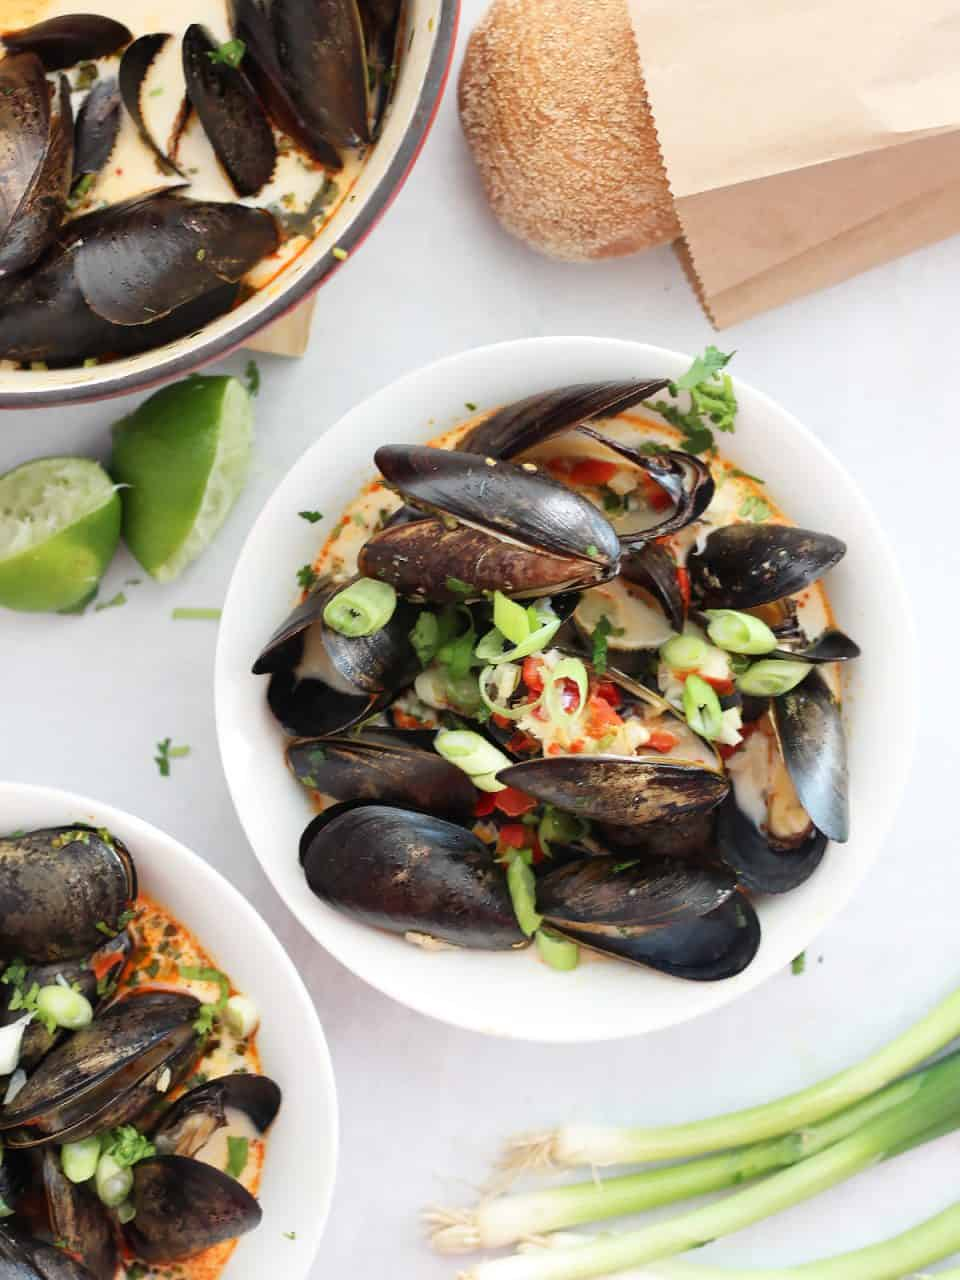 Two bowls of chili mussels next to a fresh lime.